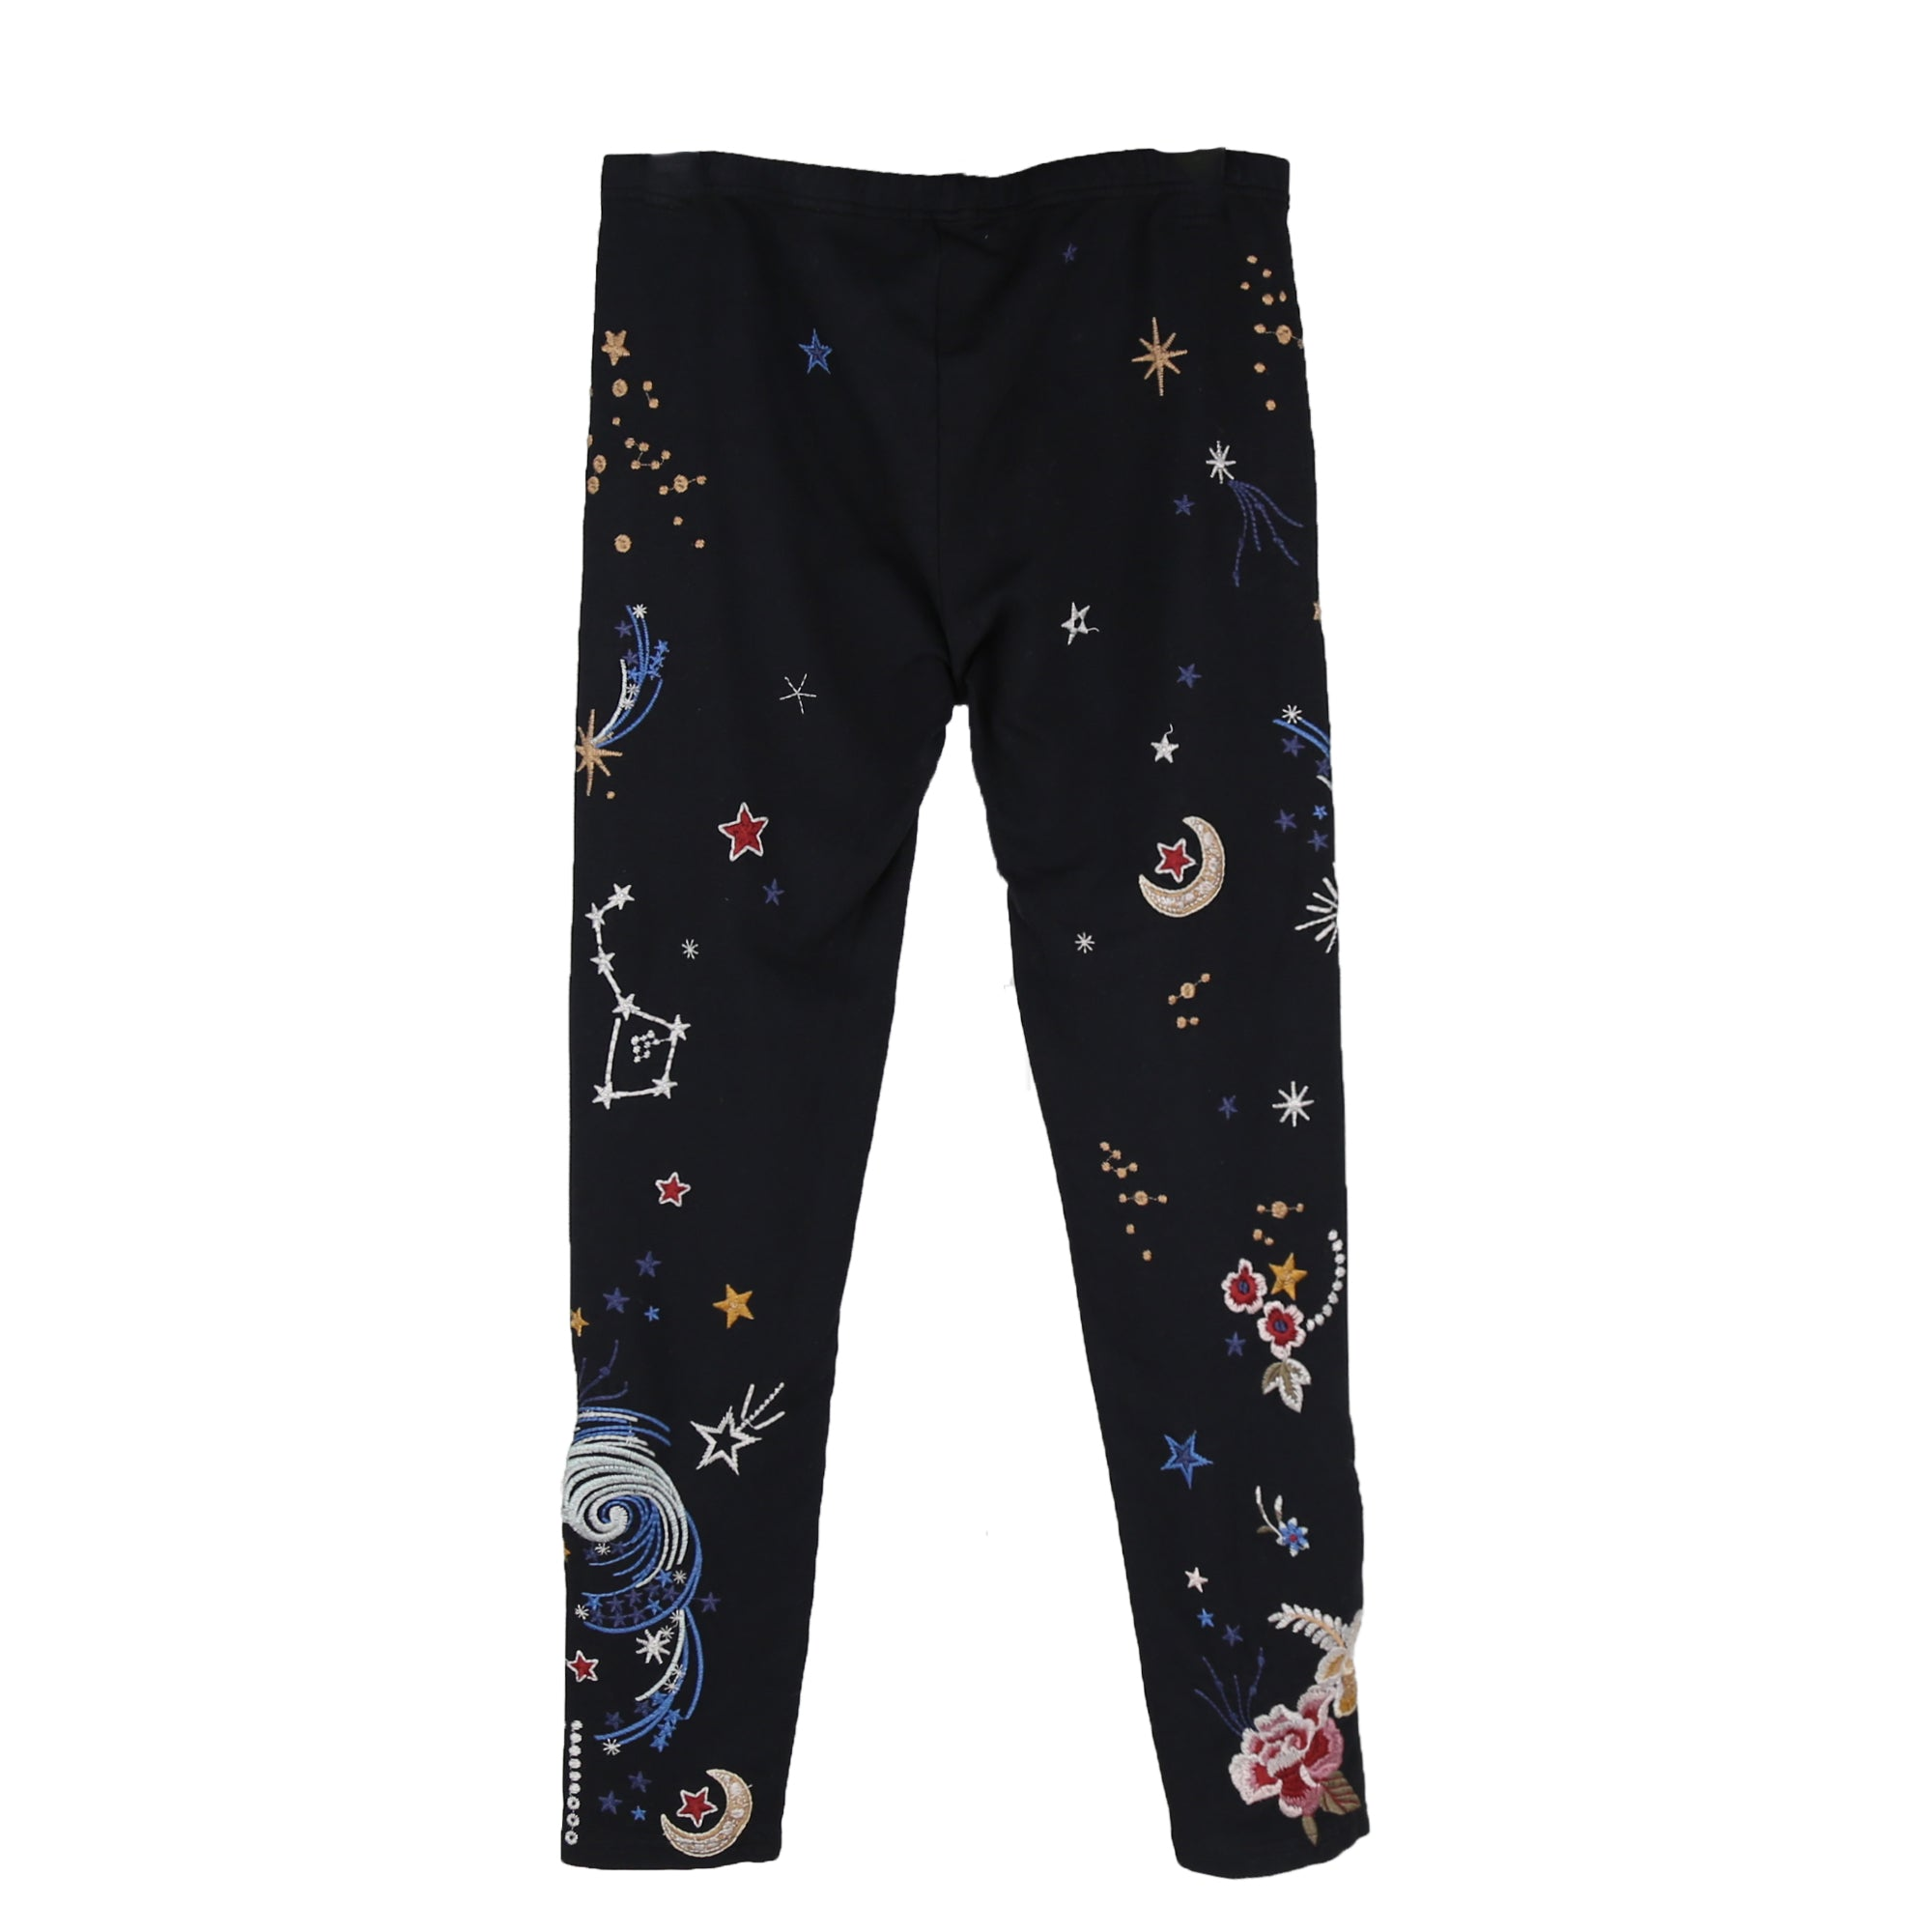 Johnny Was Cyllene Legging, Black with Embroidered Detailing